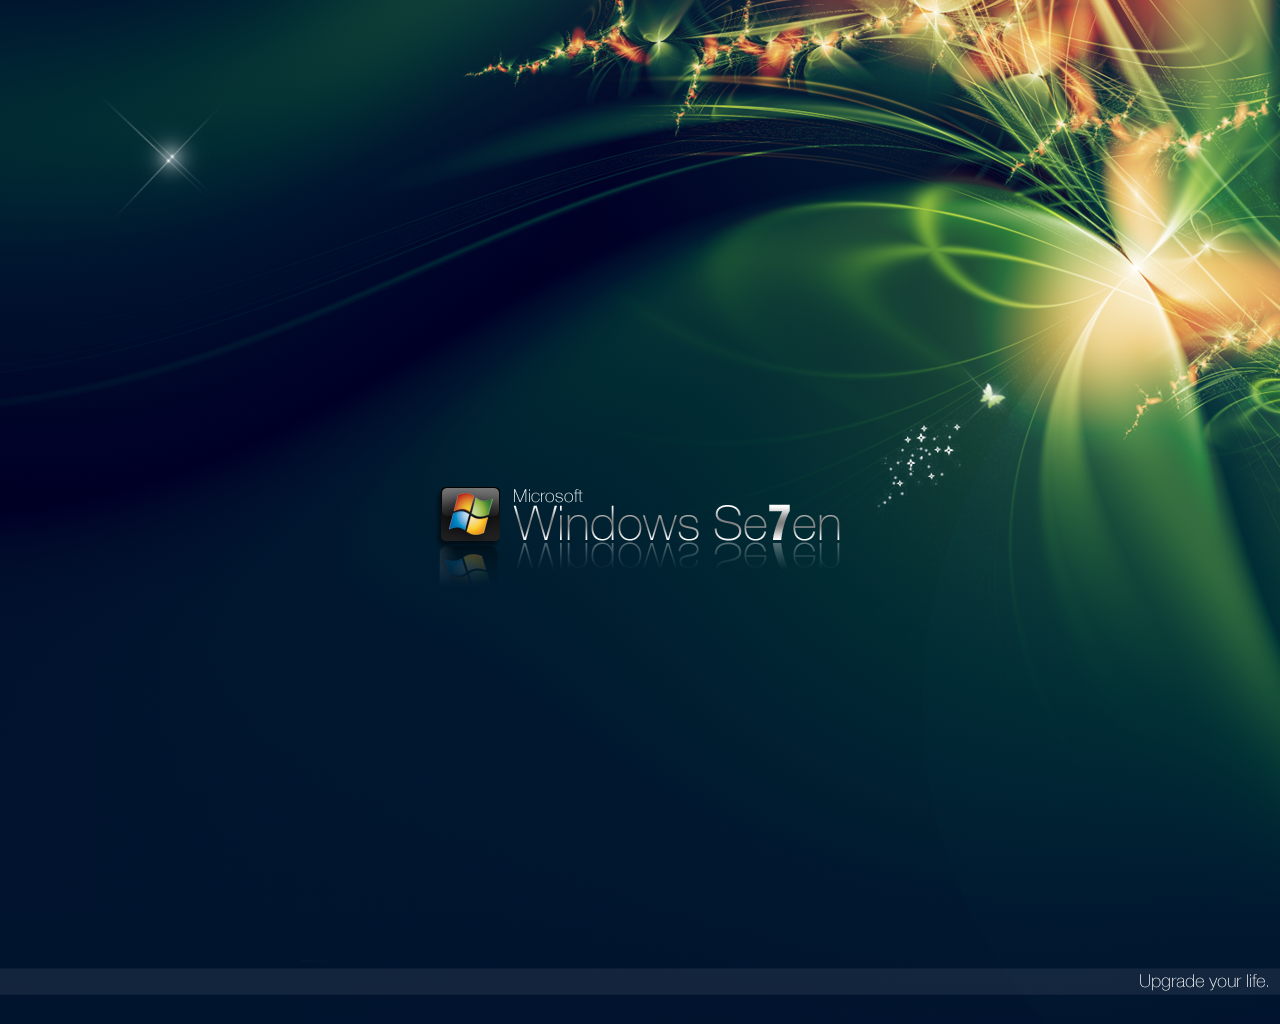 high quality windows 7 wallpapers